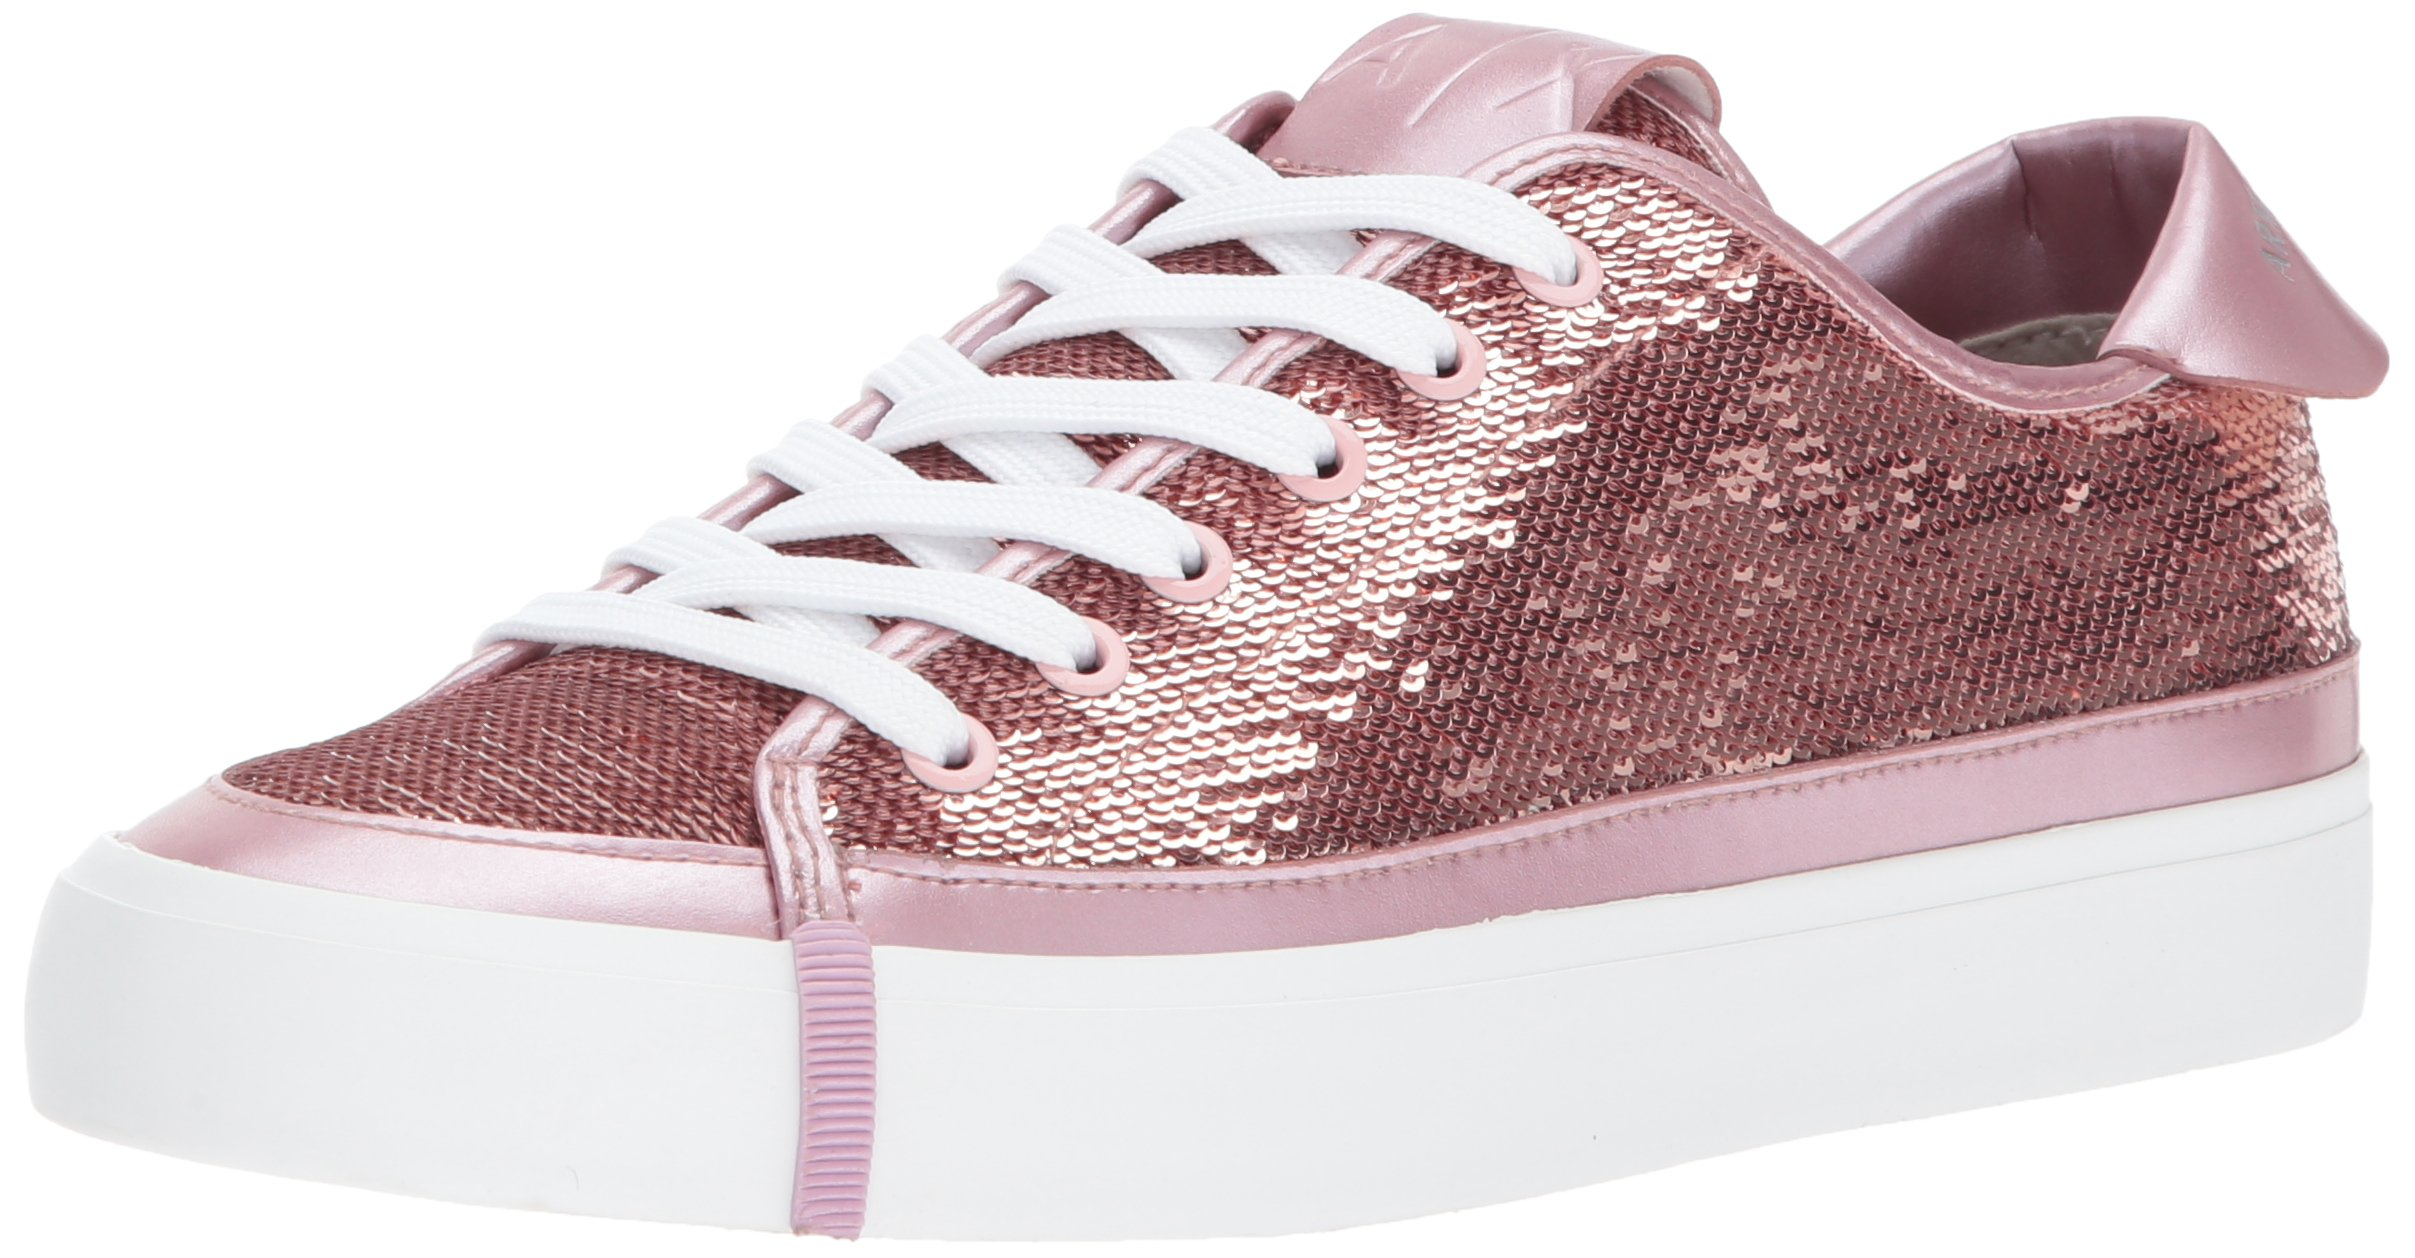 A|X Armani Exchange Women's Sequined Low Top Sneaker, Blossom, 5 M US